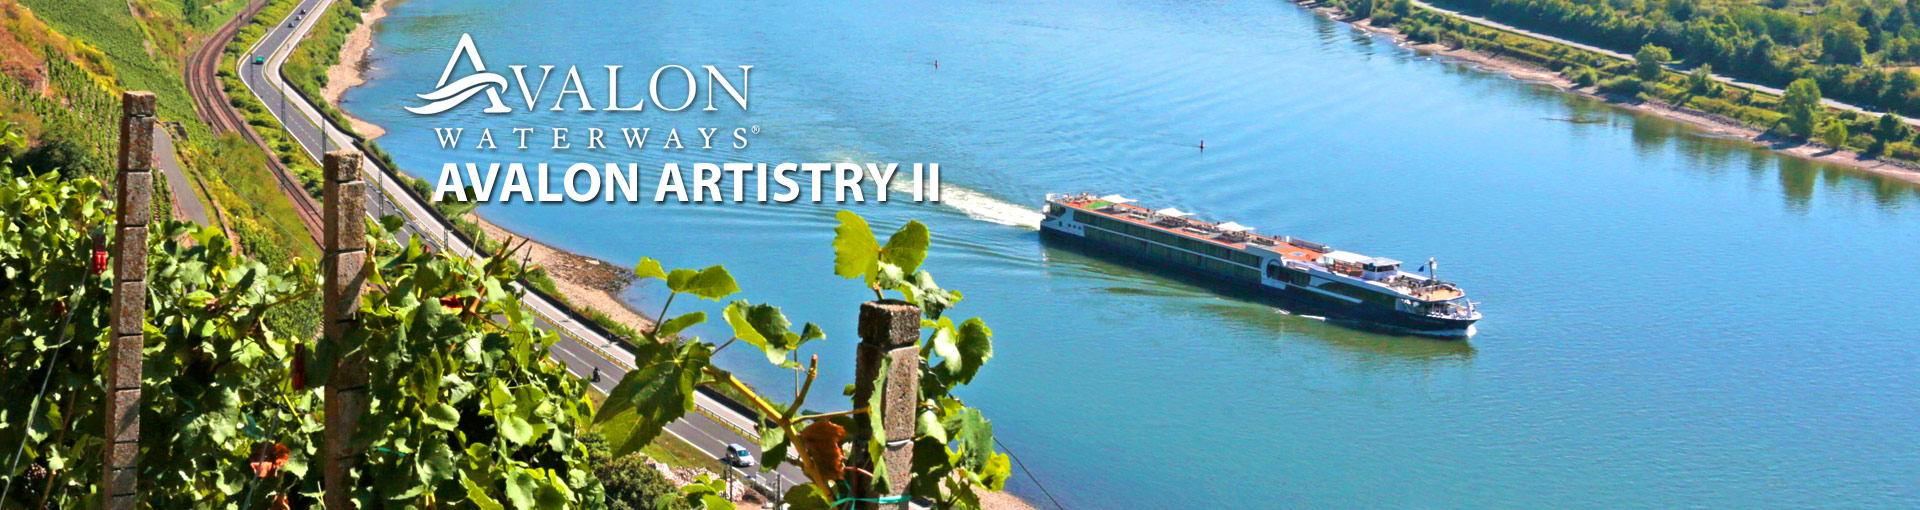 Avalon Waterways Artistry II river cruise ship